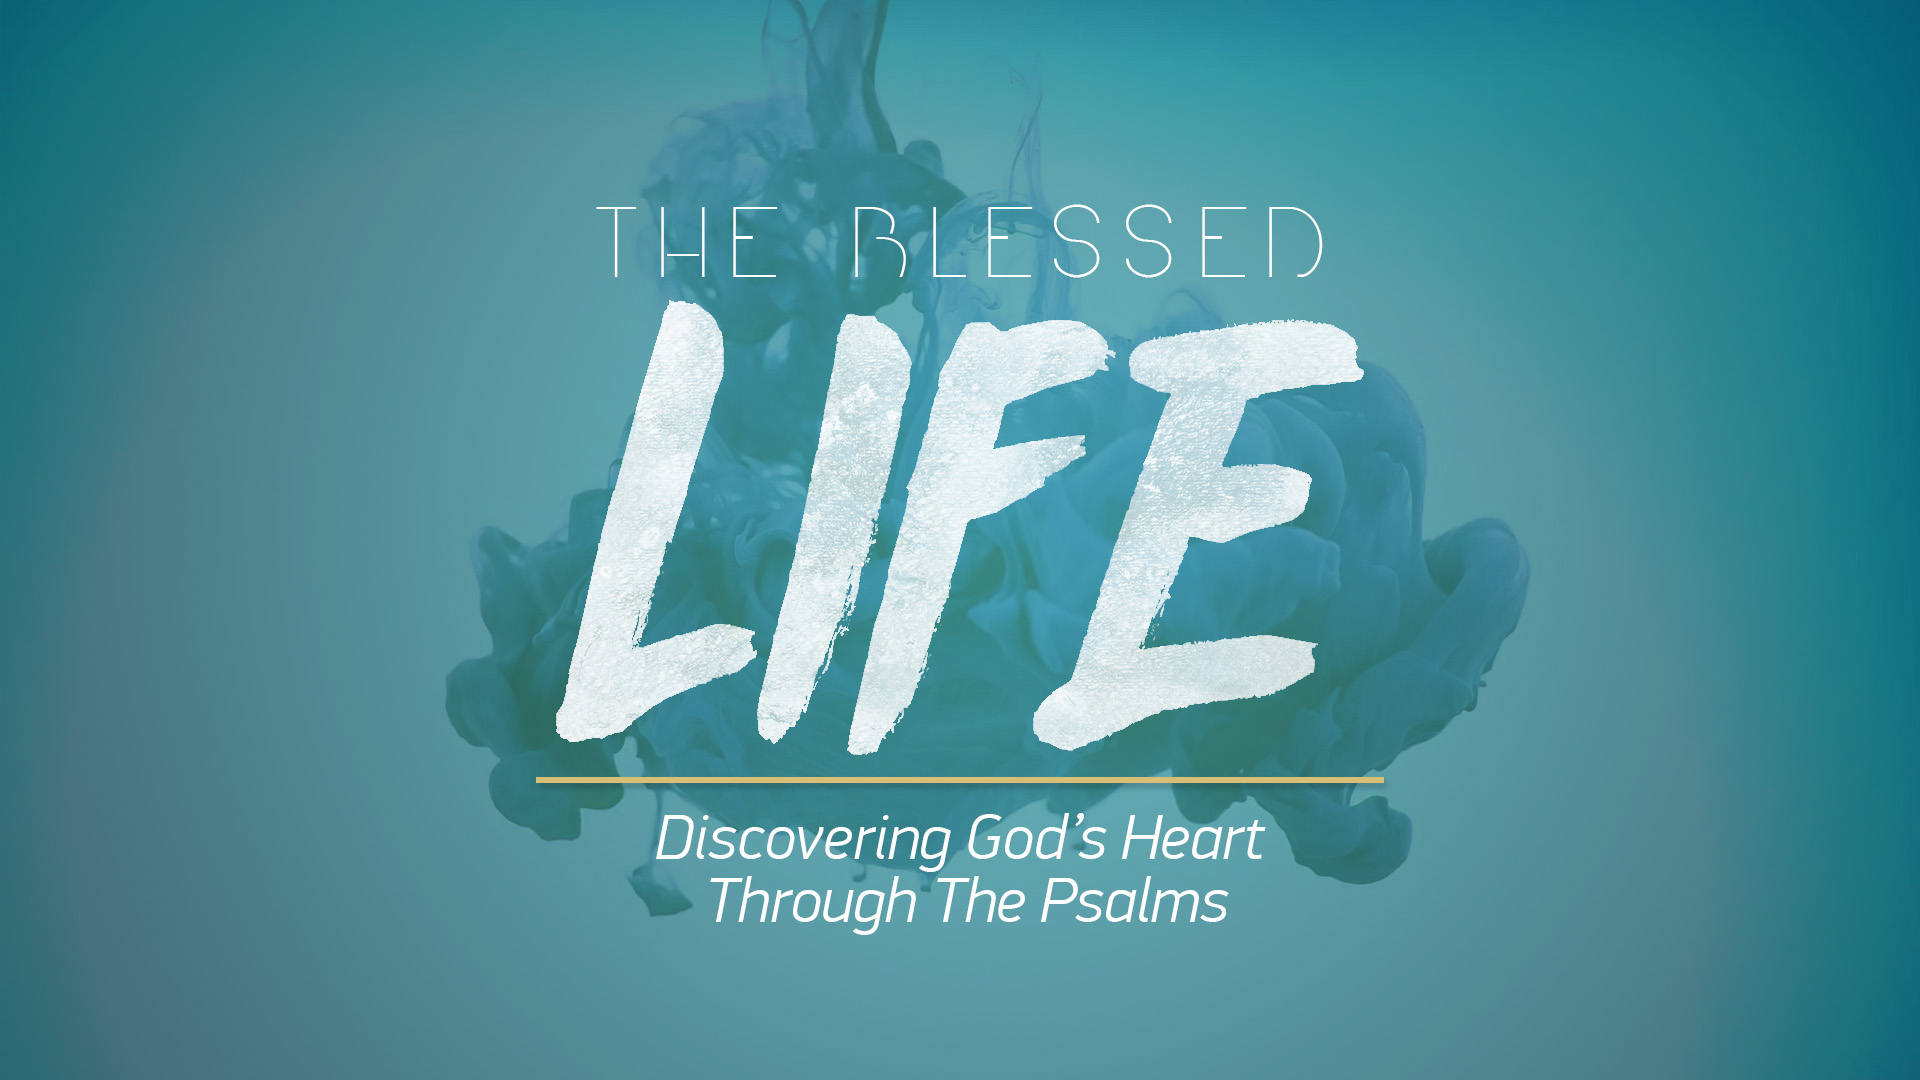 The Blessed Life: Discovering God's Heart Through The Psalms